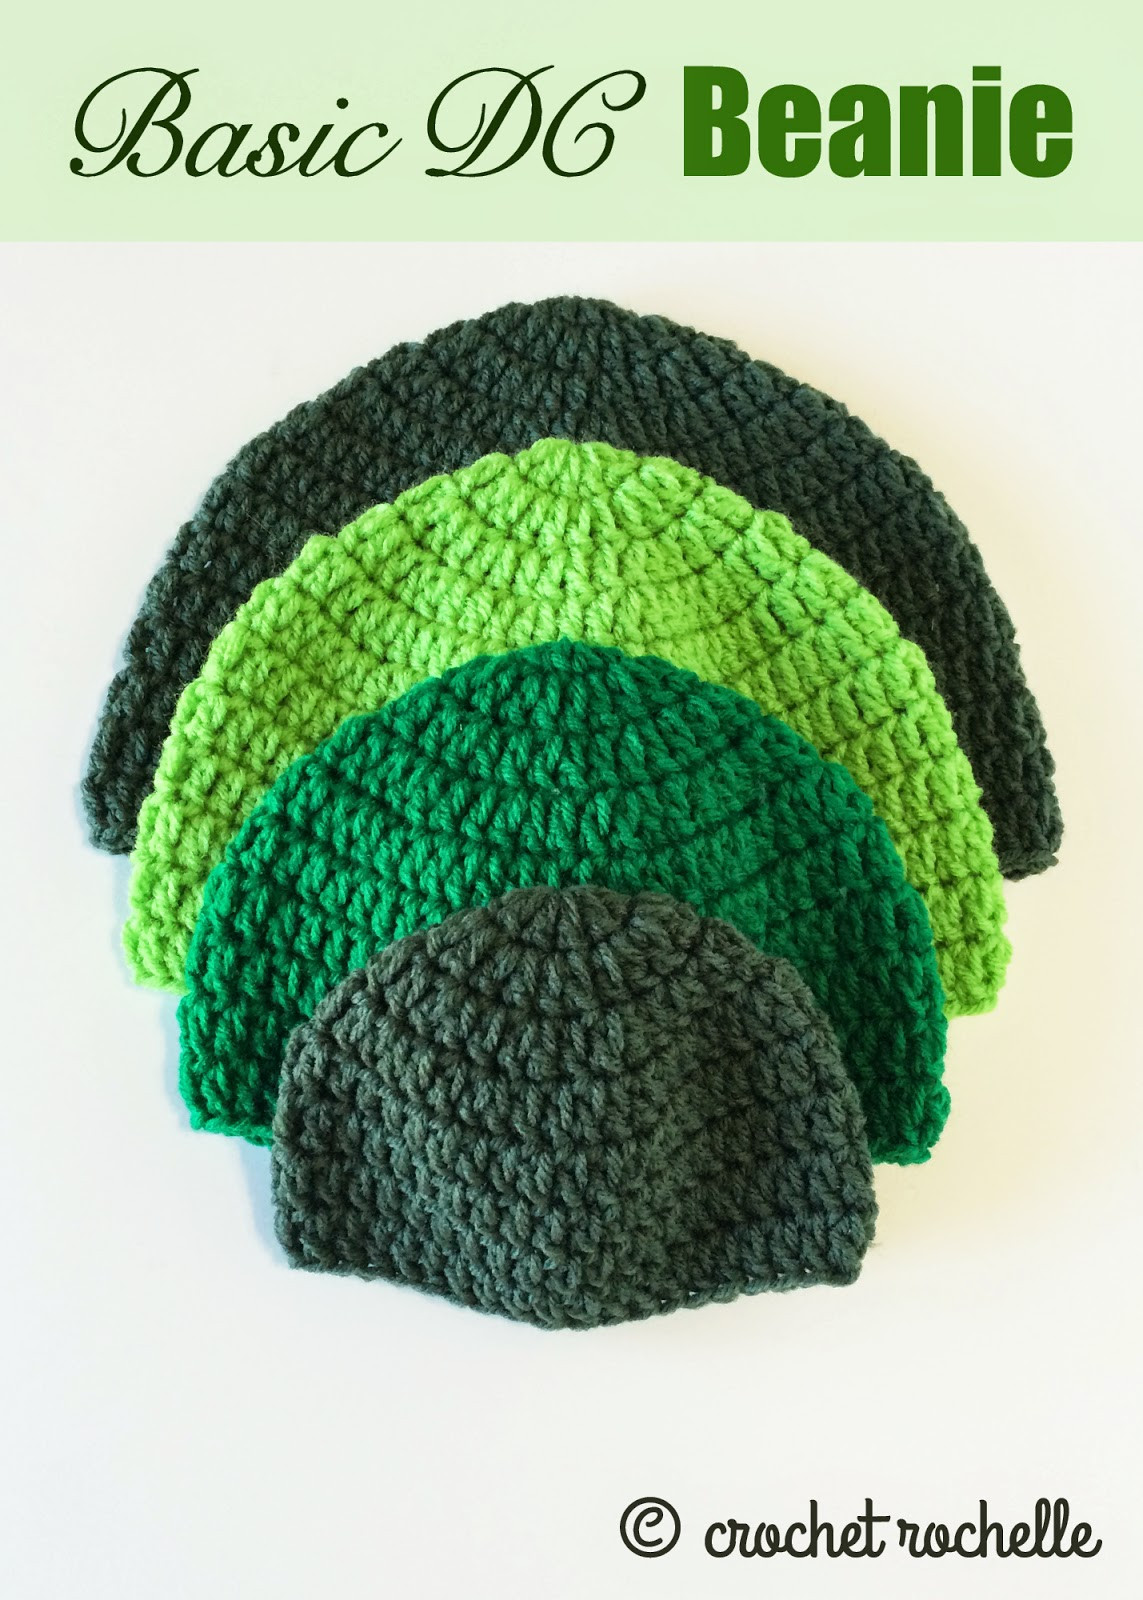 Basic Crochet Patterns New Crochet Rochelle Basic Dc Beanie Pattern Of Amazing 47 Ideas Basic Crochet Patterns